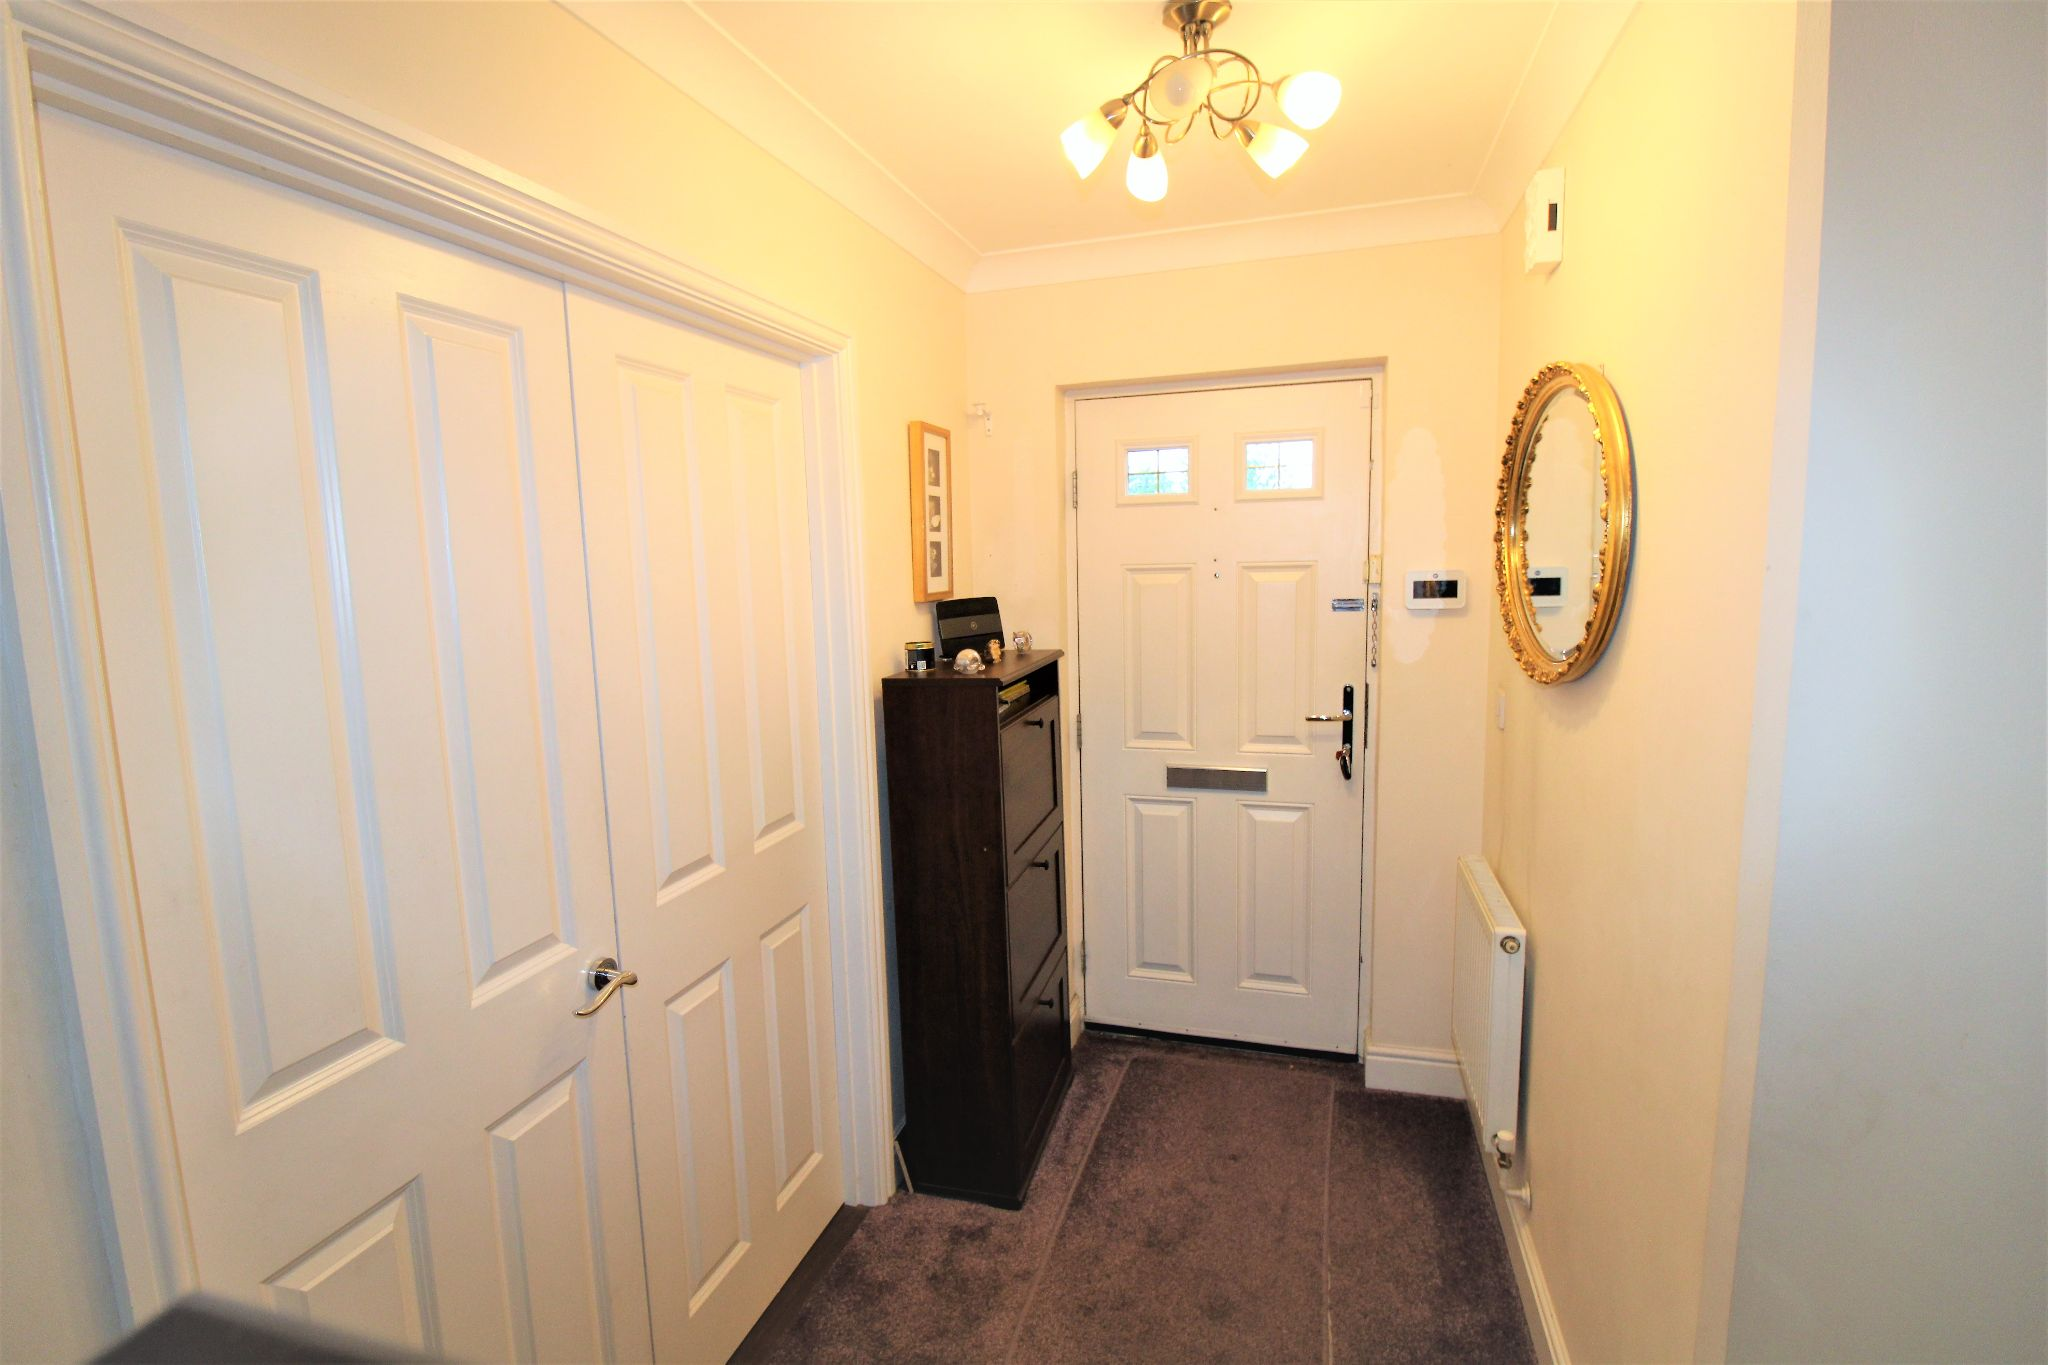 5 Bedroom Detached House For Sale - Entrance